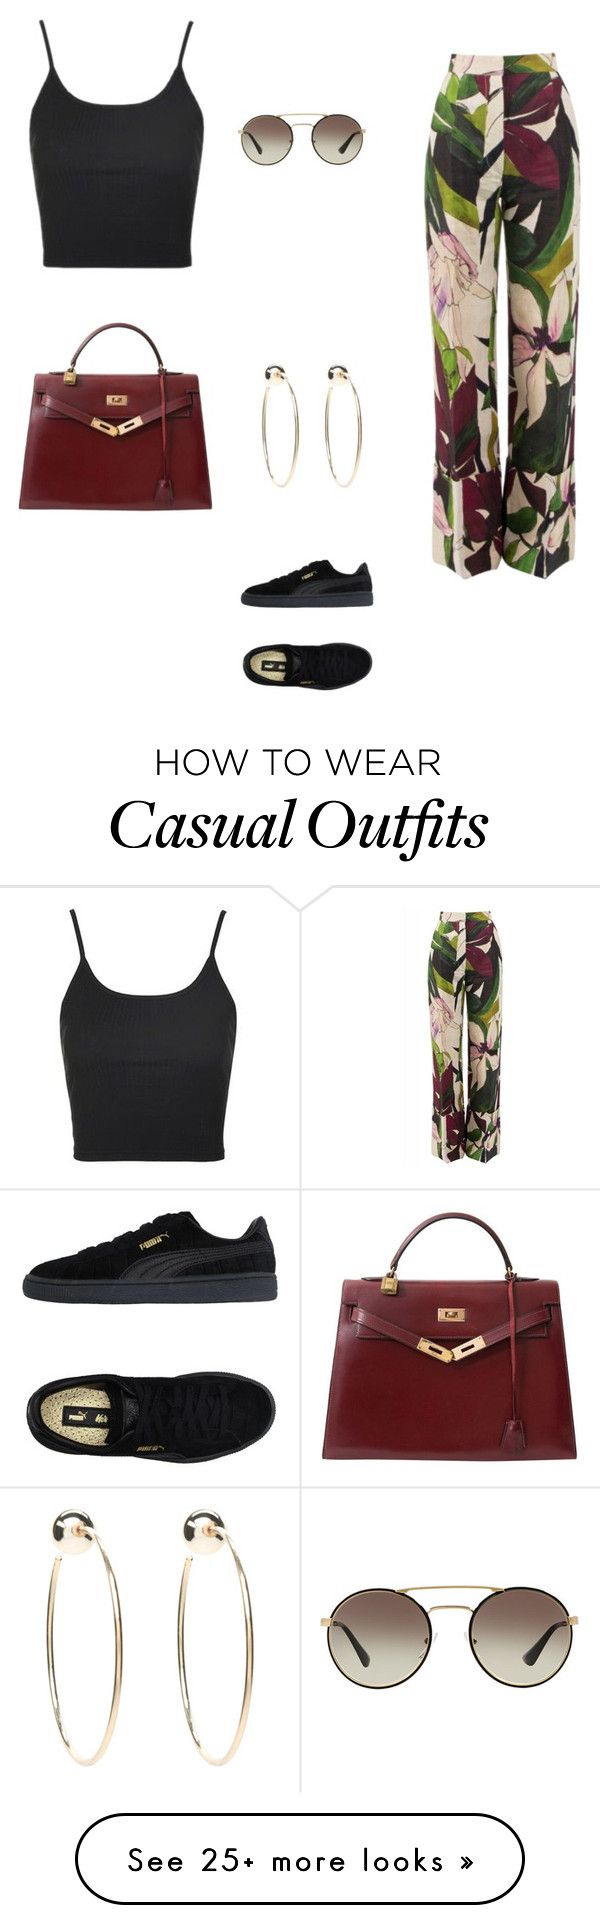 """Casual day outfit"" by liyahh000 on Polyvore featuring Erika Cavallini Semi-Couture, Topshop, Hermès, Bebe, Prada and Puma"